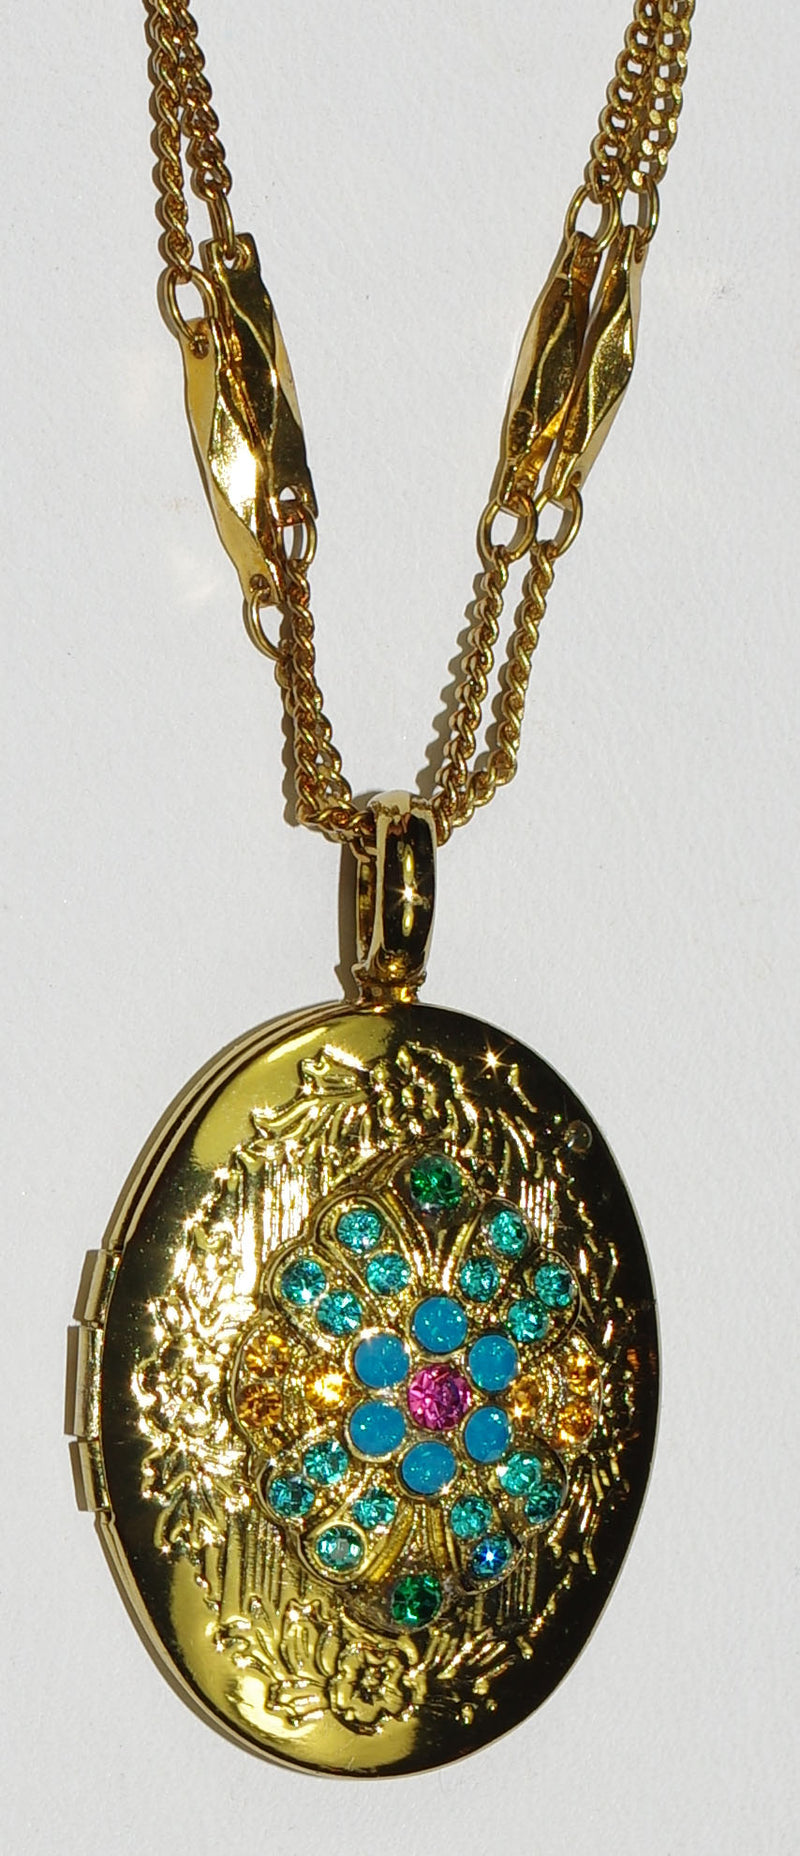 "MARIANA LOCKET PENDANT SELENE: blue, pink, amber stones in 1"" european gold setting, 18"" double adjustable chain"